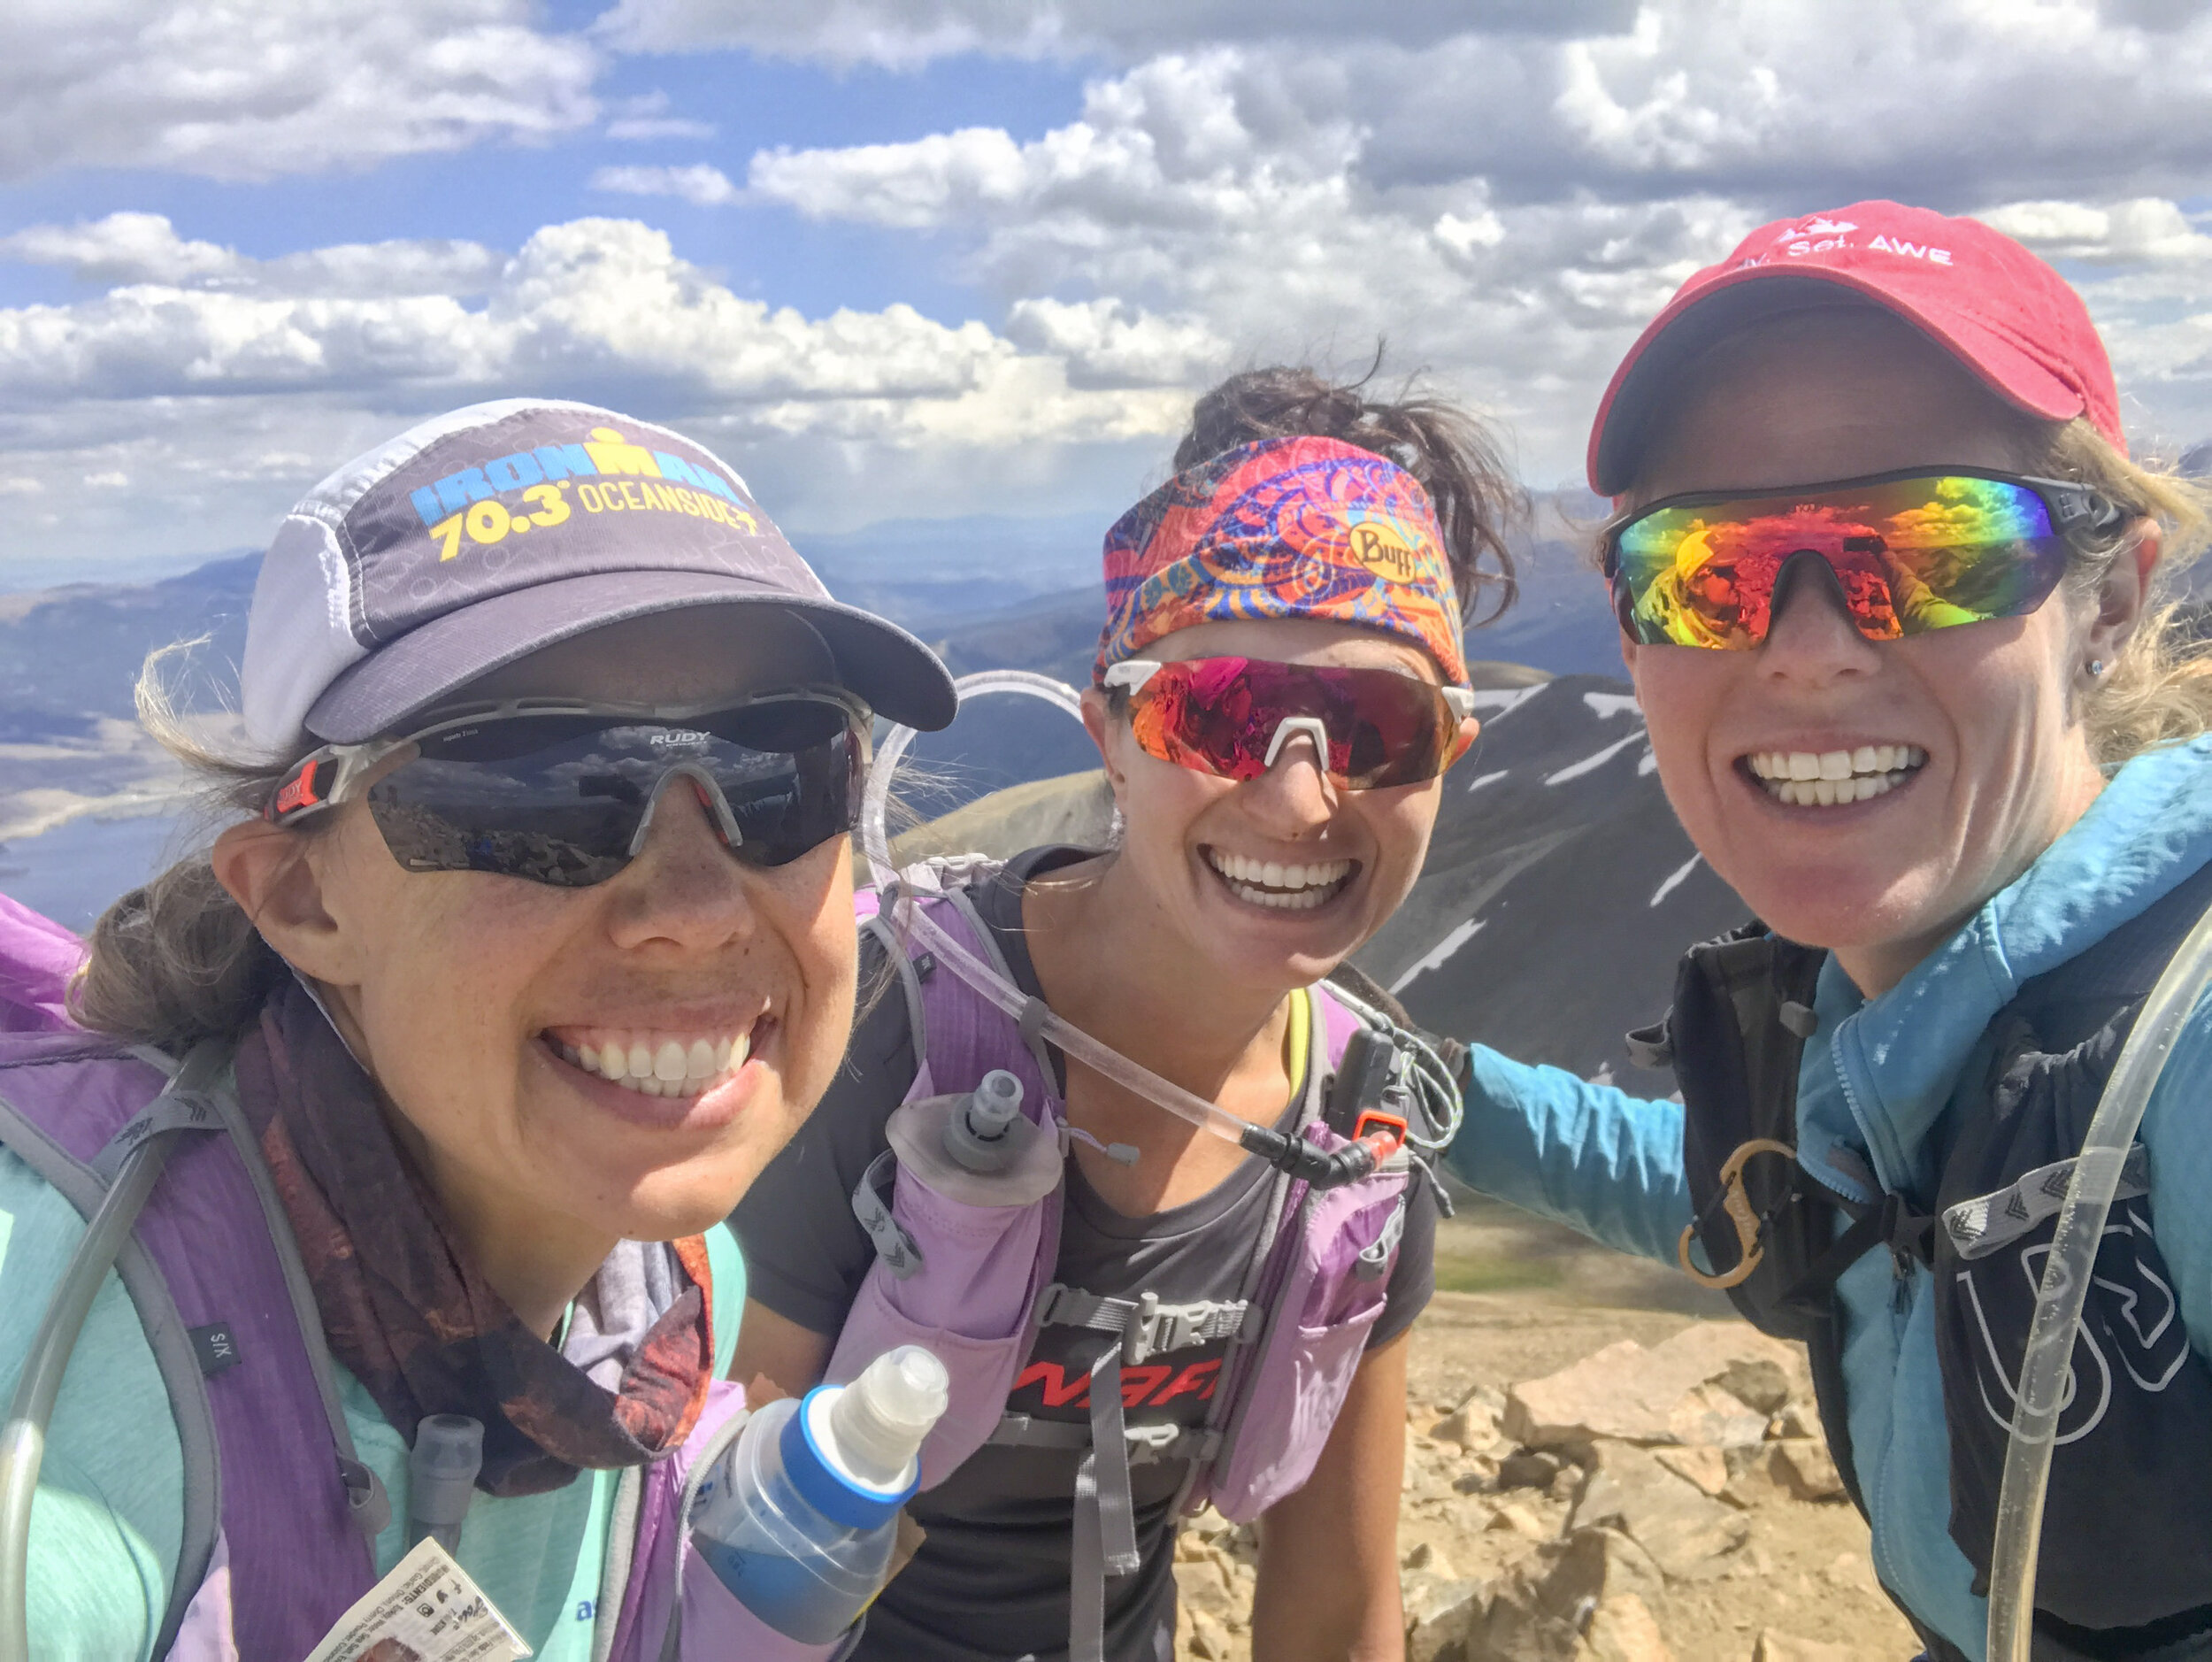 Tara, Ilana and I all smiles on Mt Elbert, Colorado's tallest 14er and summit #2 of Nolan's 14.